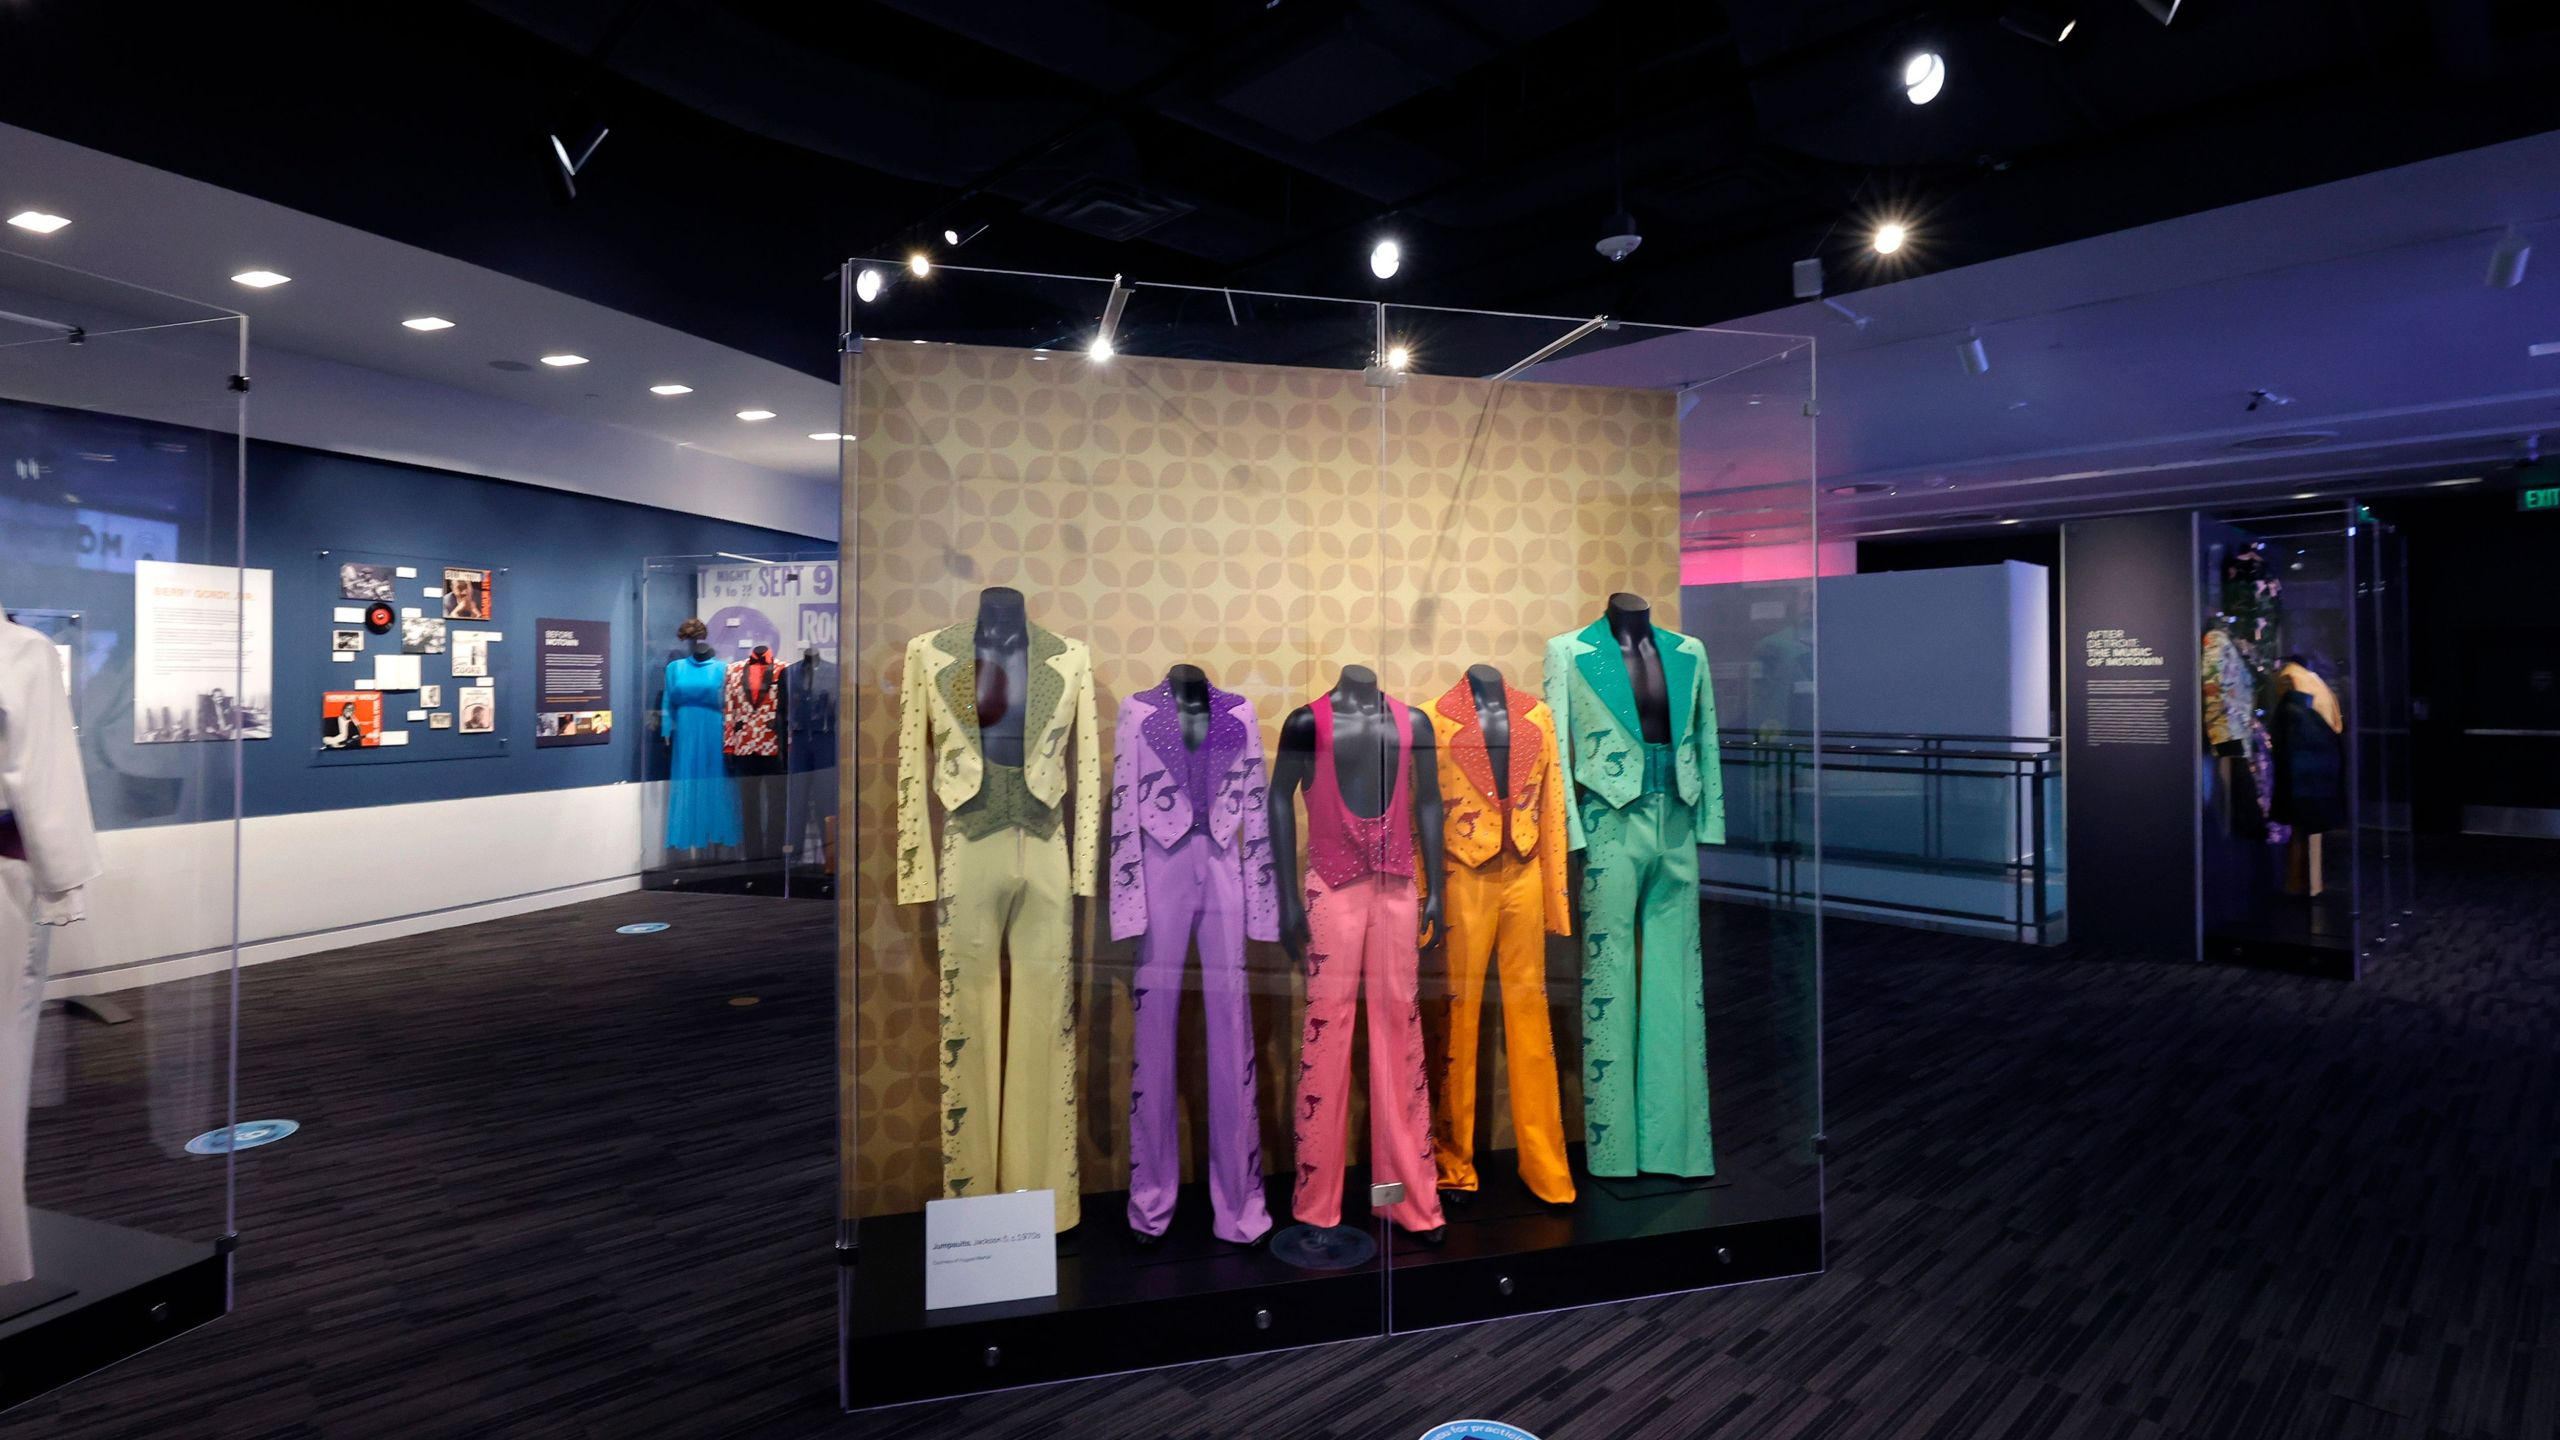 The Jackson 5 outfits are displayed during the GRAMMY Museum Reopening Press Preview Day at The GRAMMY Museum on May 12, 2021 in Los Angeles. (Frazer Harrison/Getty Images)